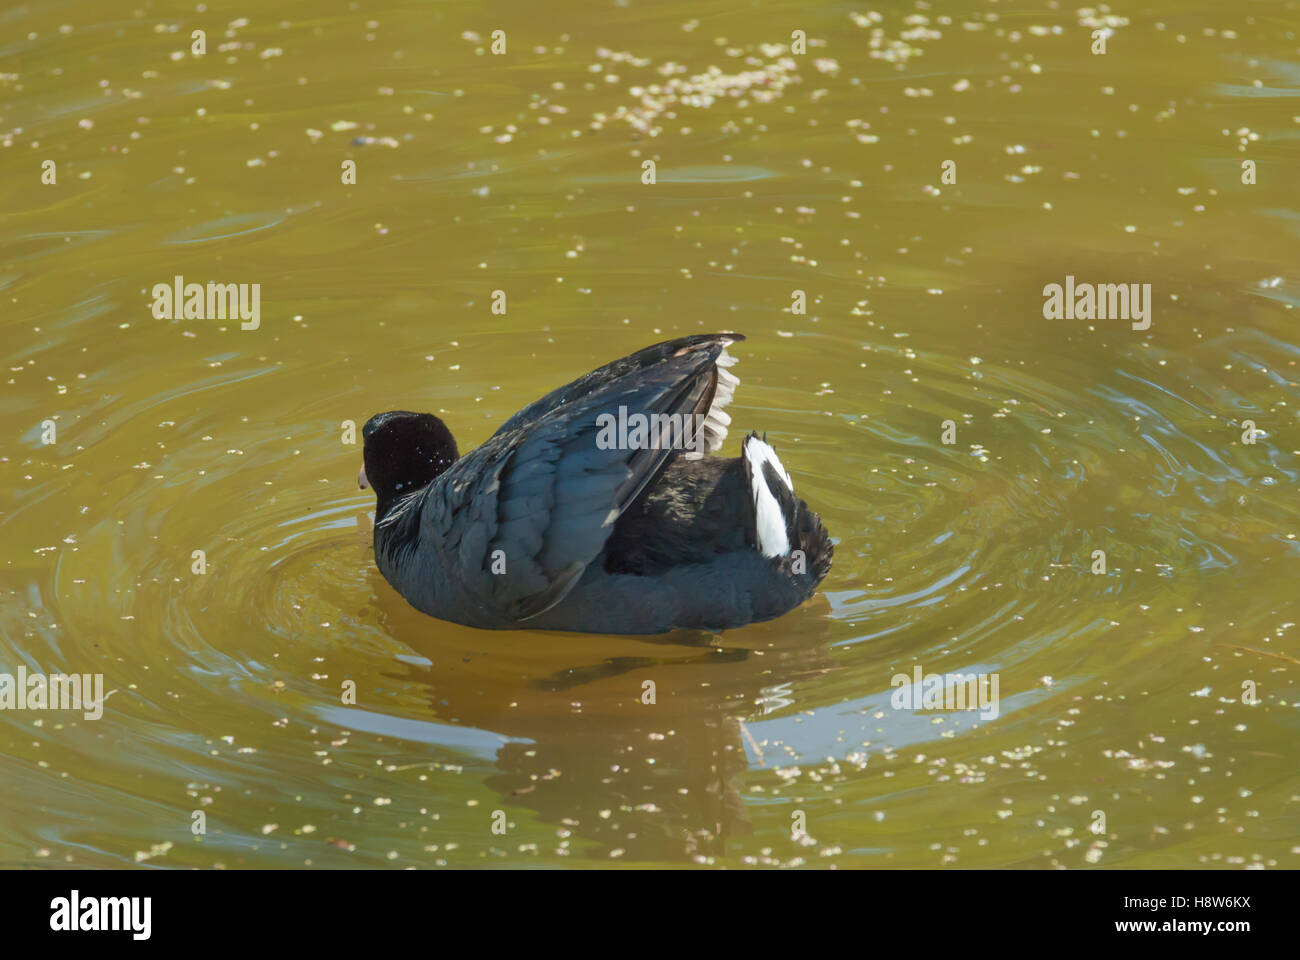 An American coot, Fulica americana, swimming in a pond and showing off his white tail feathers in an aggressive - Stock Image